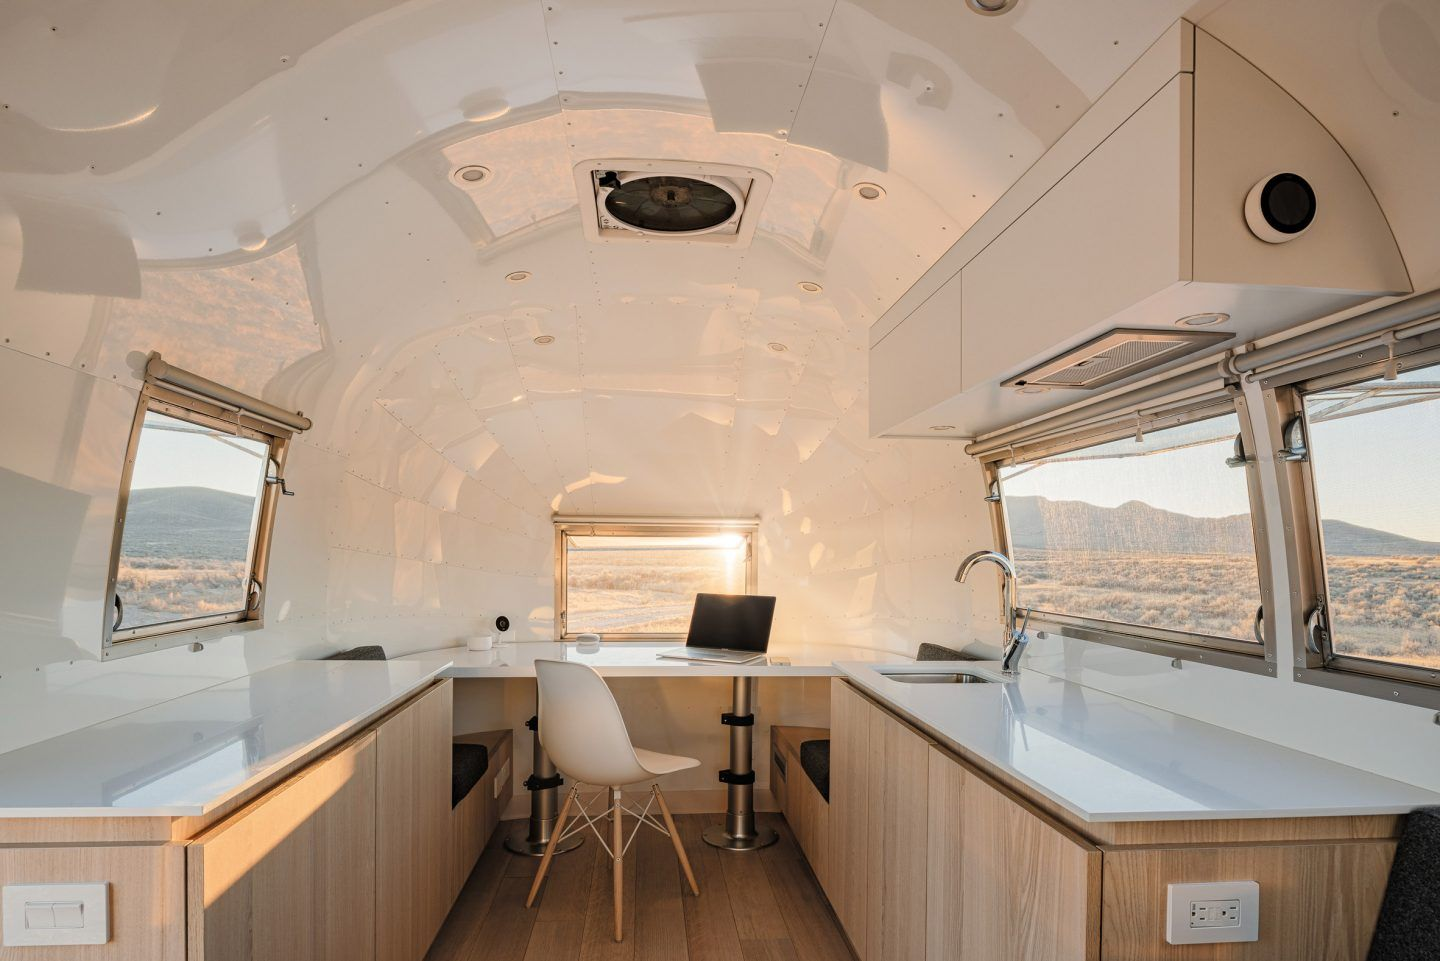 IGNANT-Architecture-Edmonds-Lee-Architects-Airstream-1